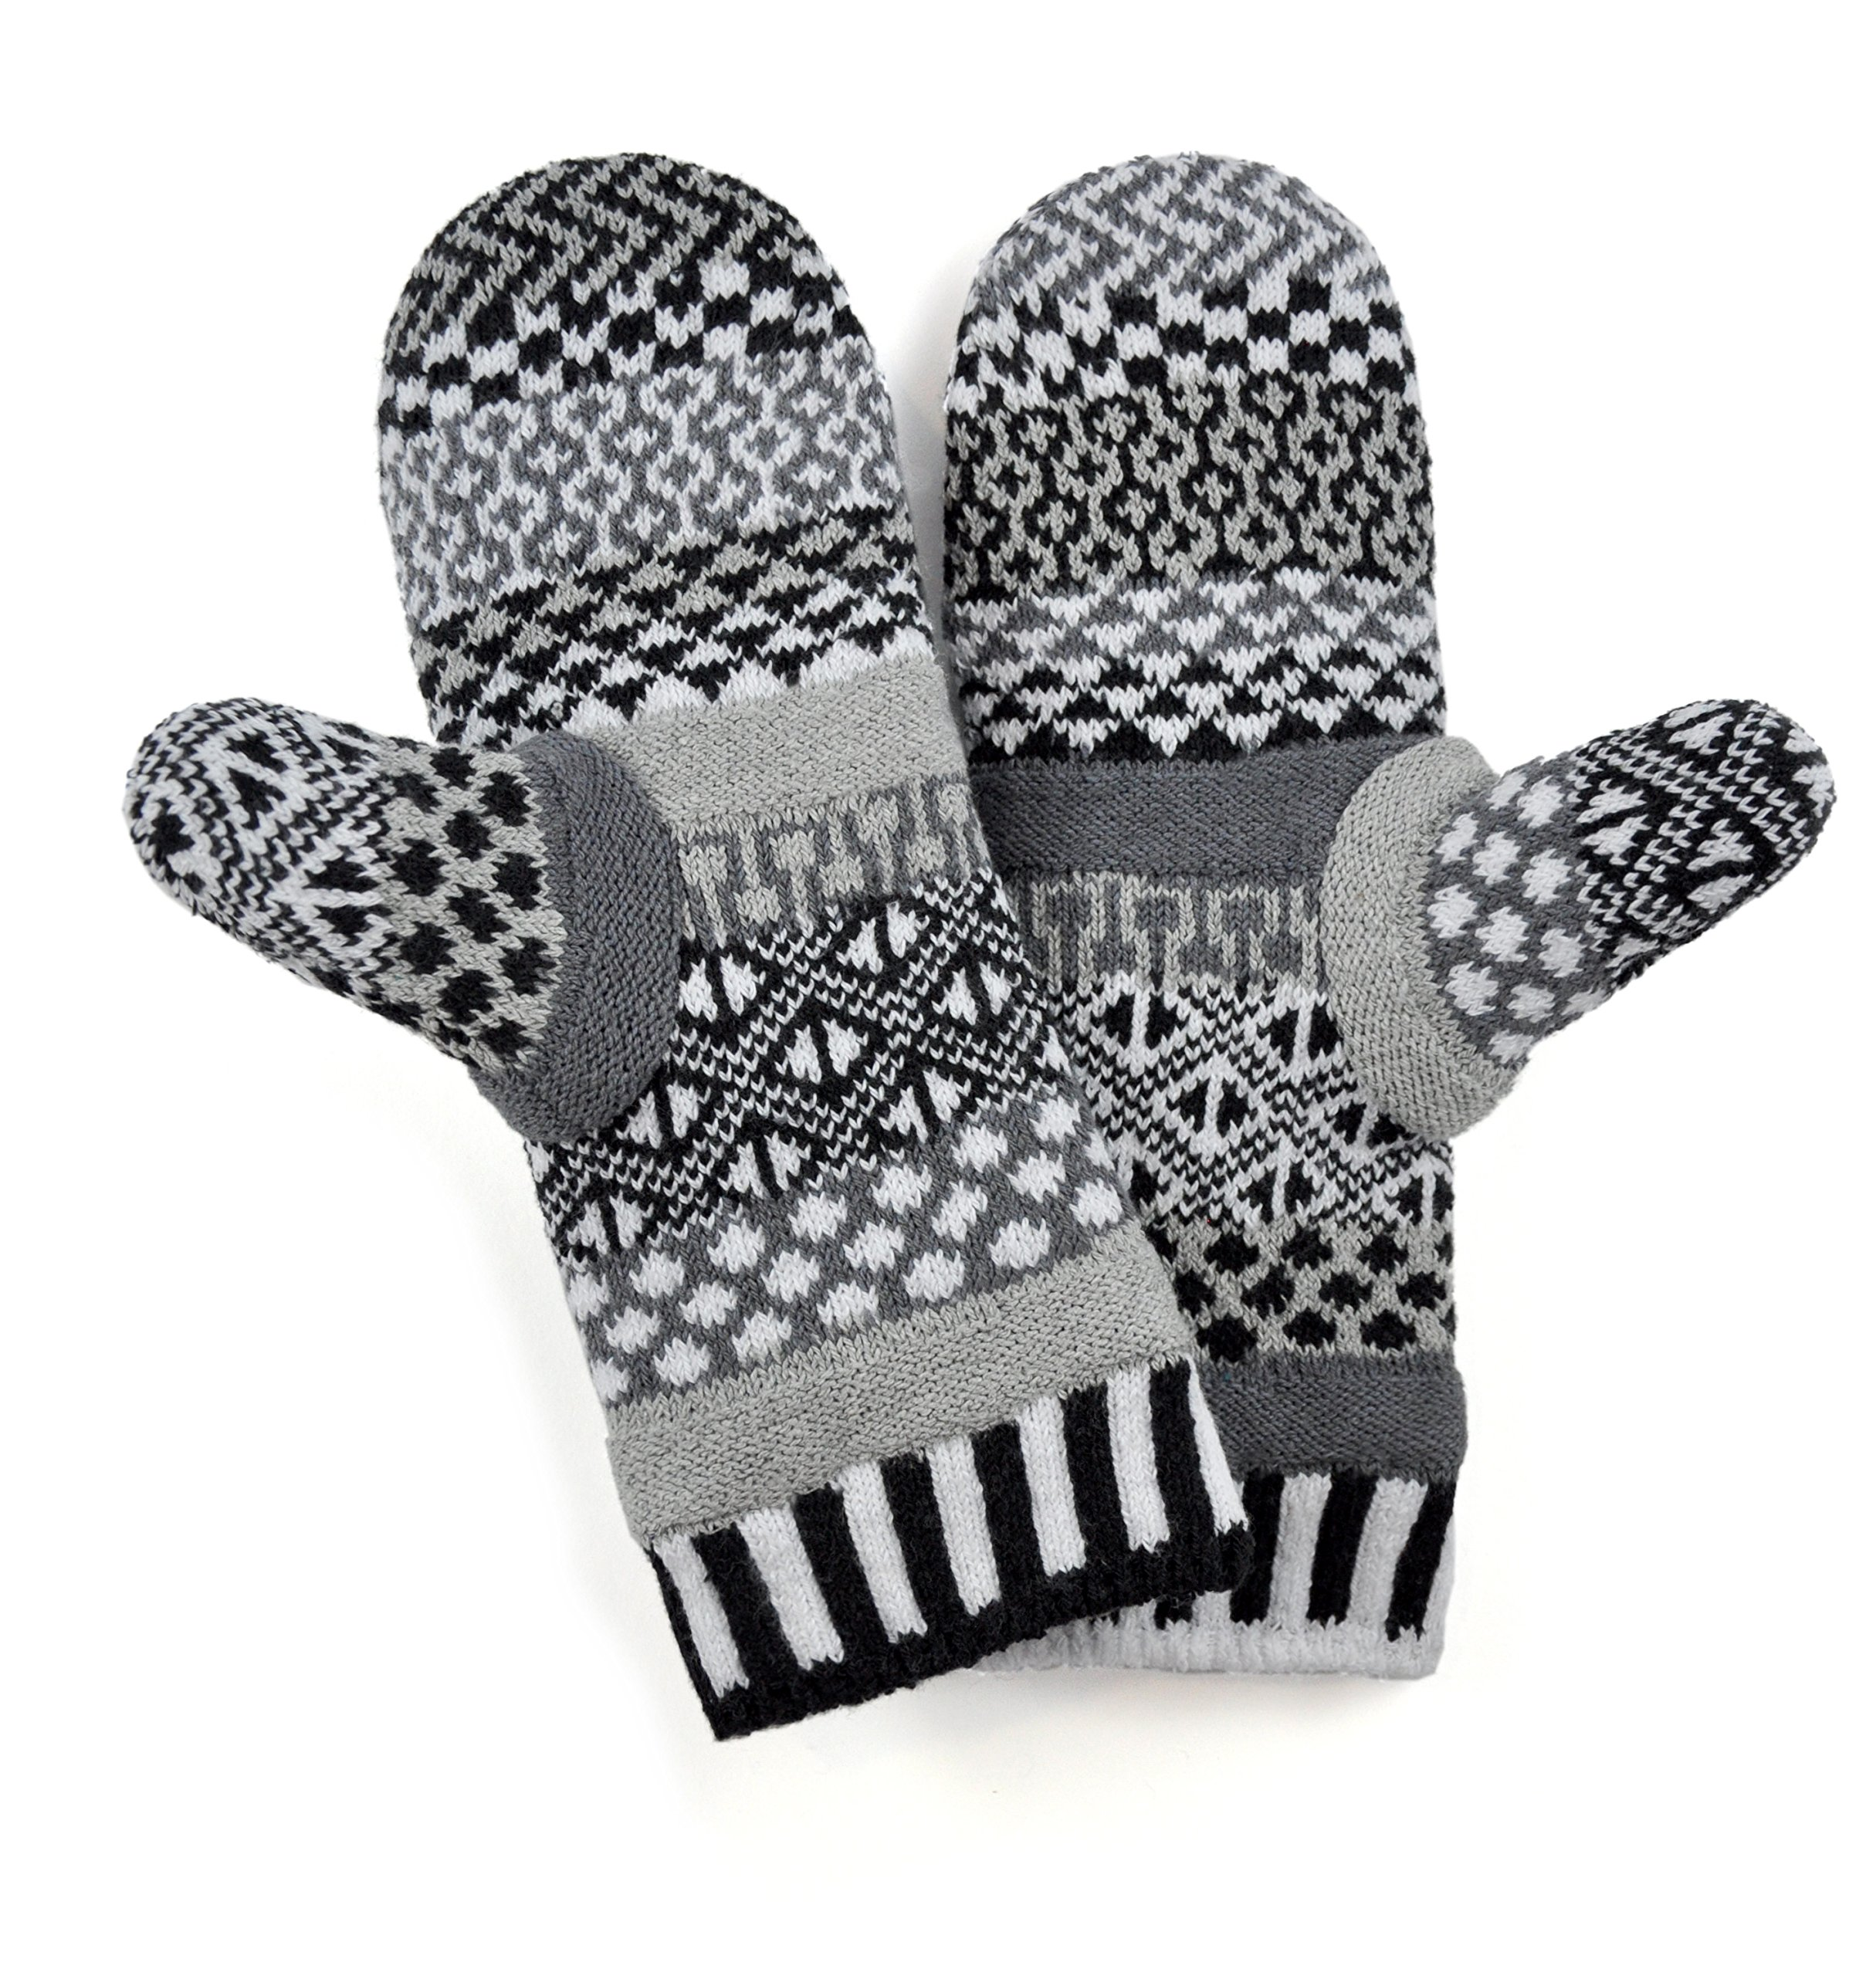 Solmate Brand USA Made Mismatched Fleece Lined Mittens, Midnight